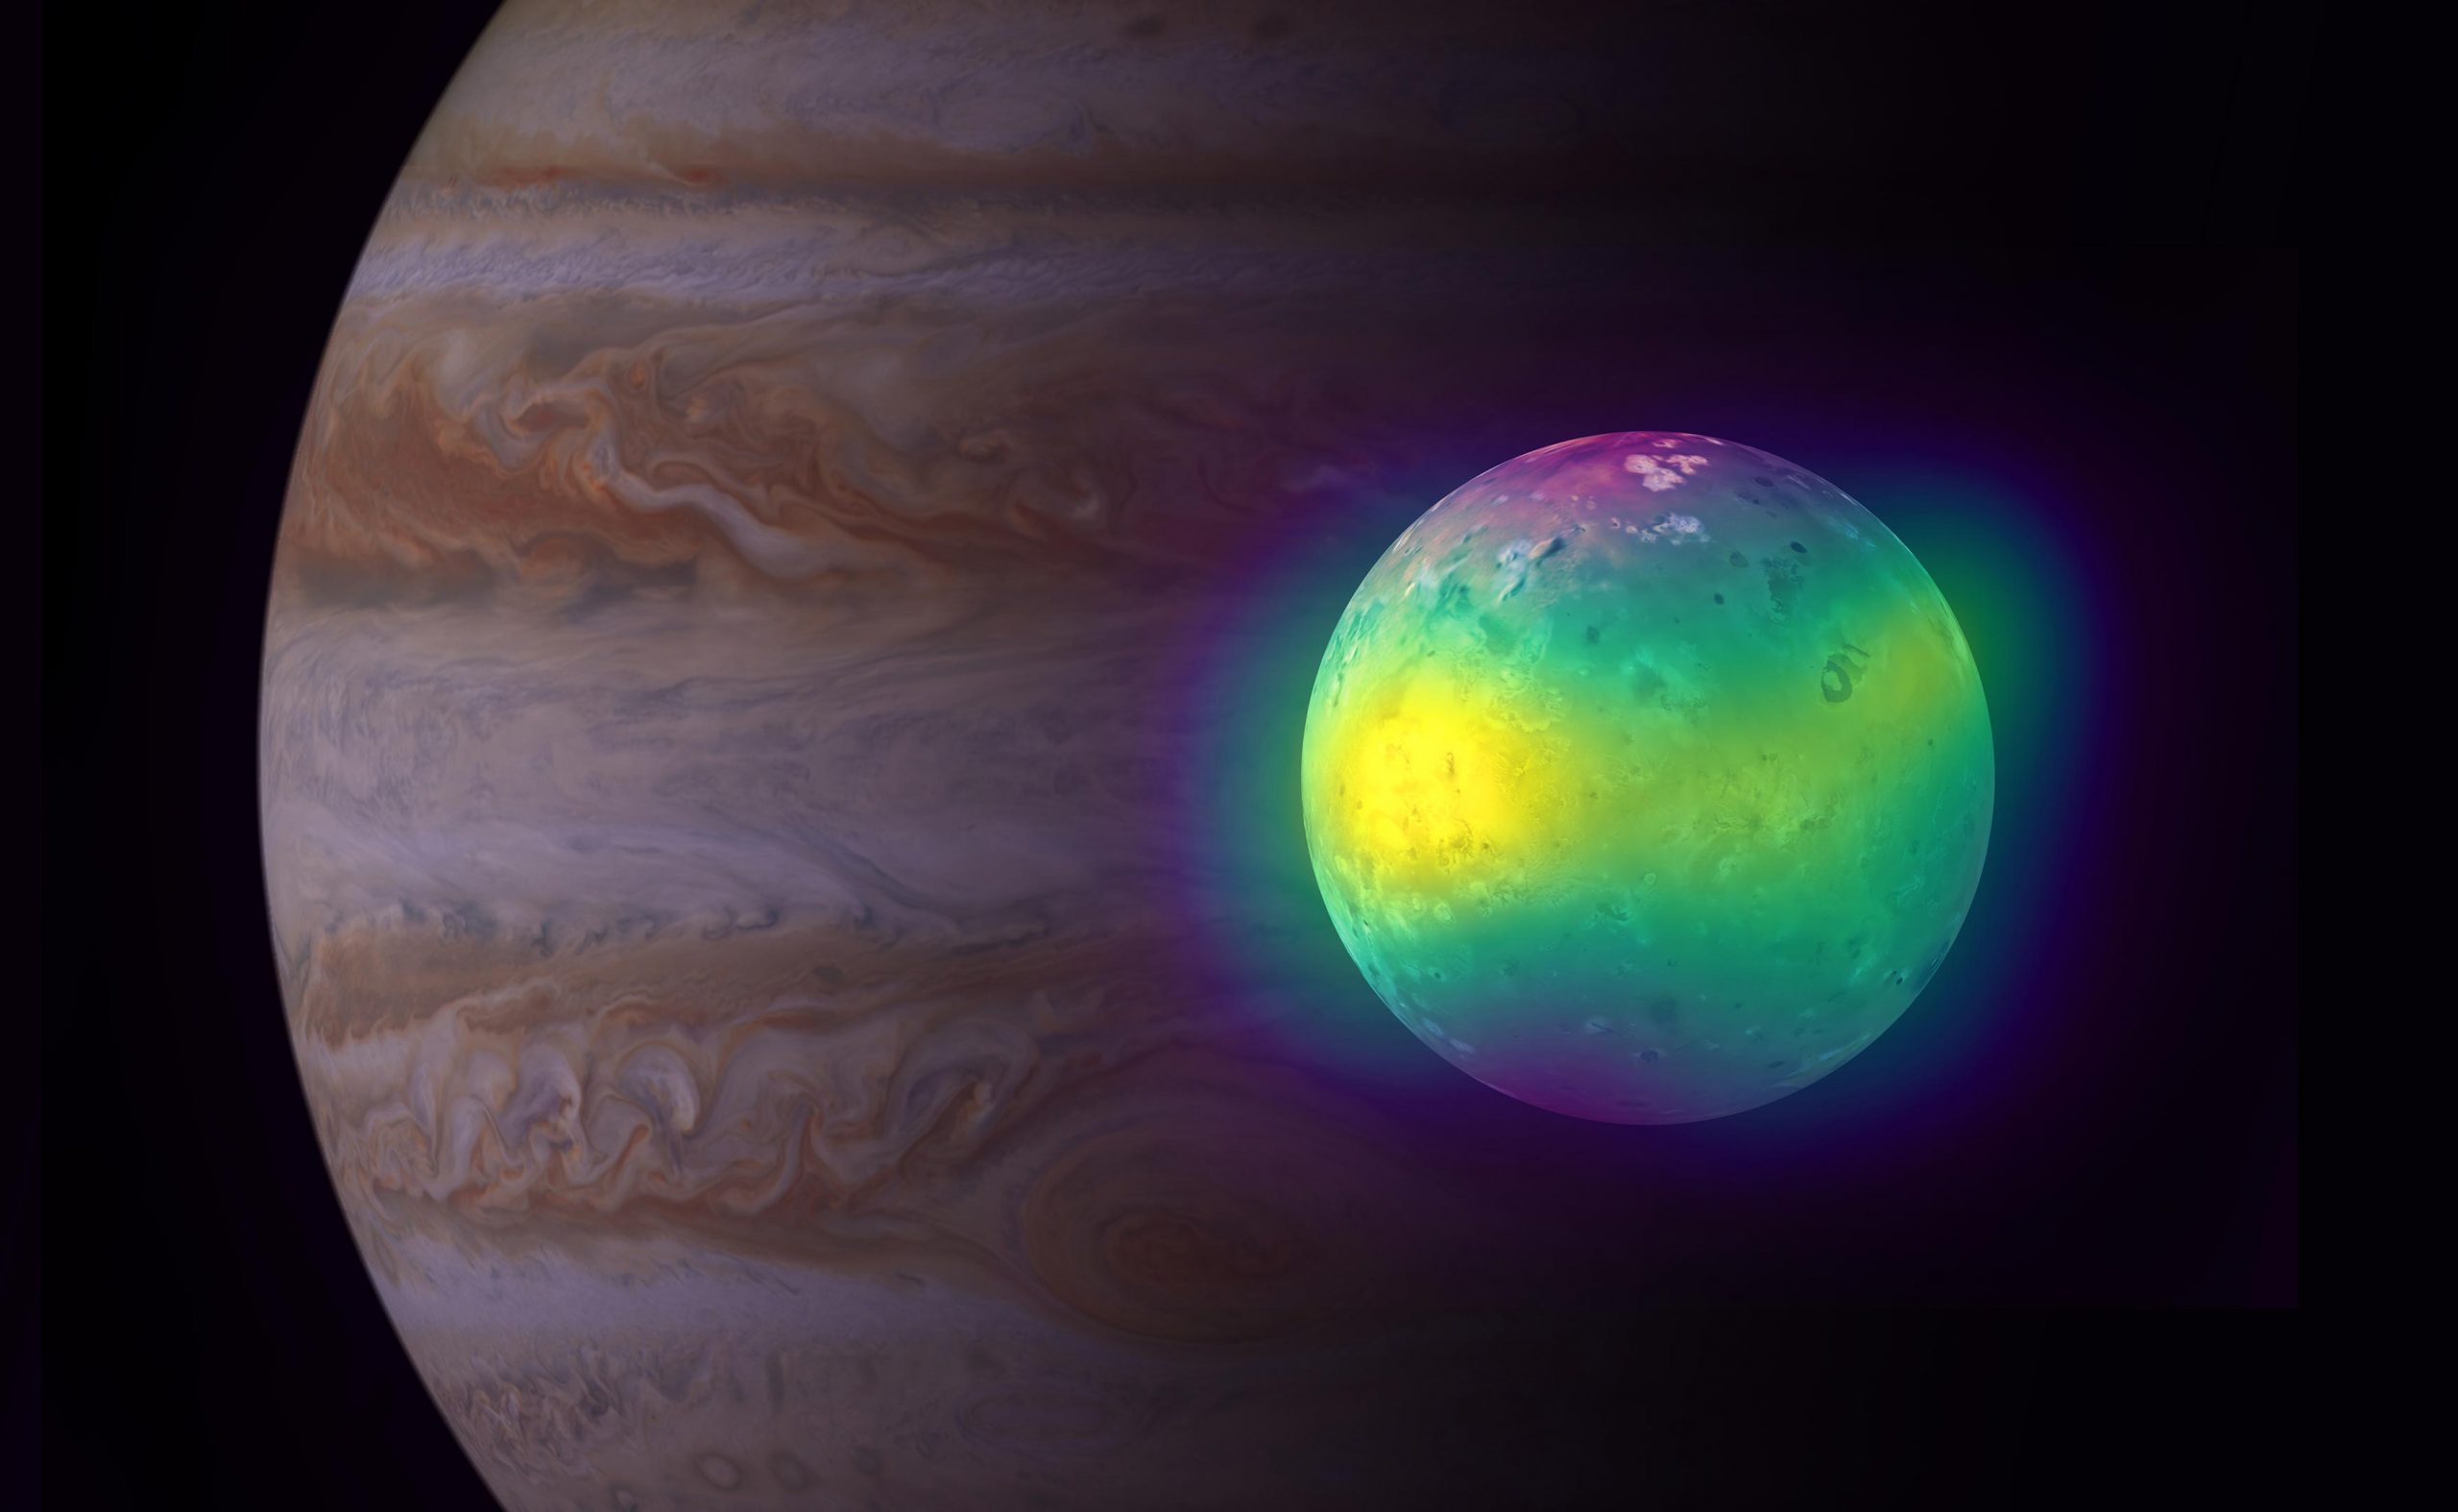 Volcanic Impact on Jupiter's Moon Io Shown Directly for the First Time - SciTechDaily